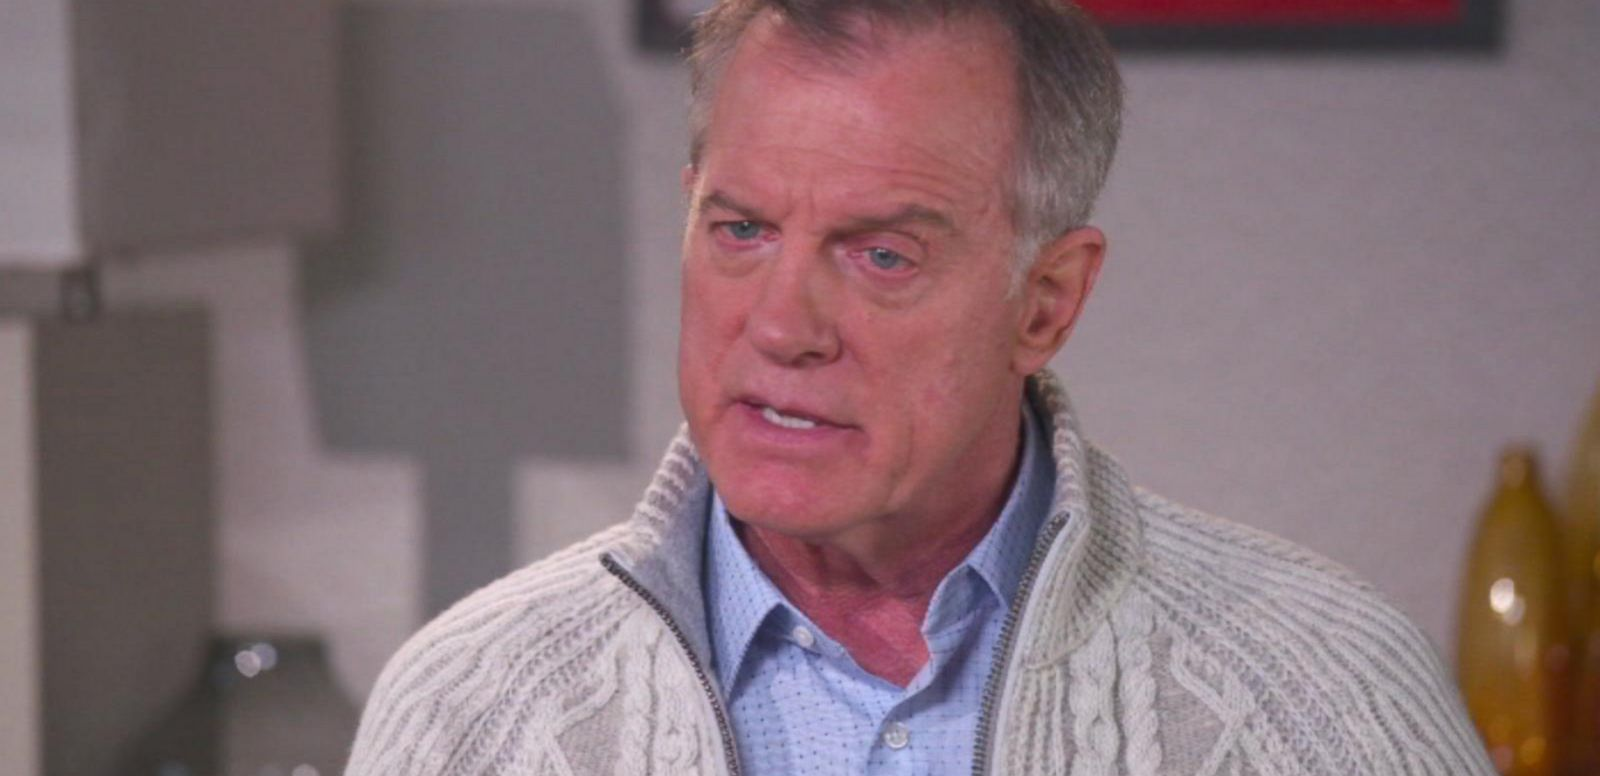 VIDEO: Stephen Collins Responds to Sexual Abuse Reports